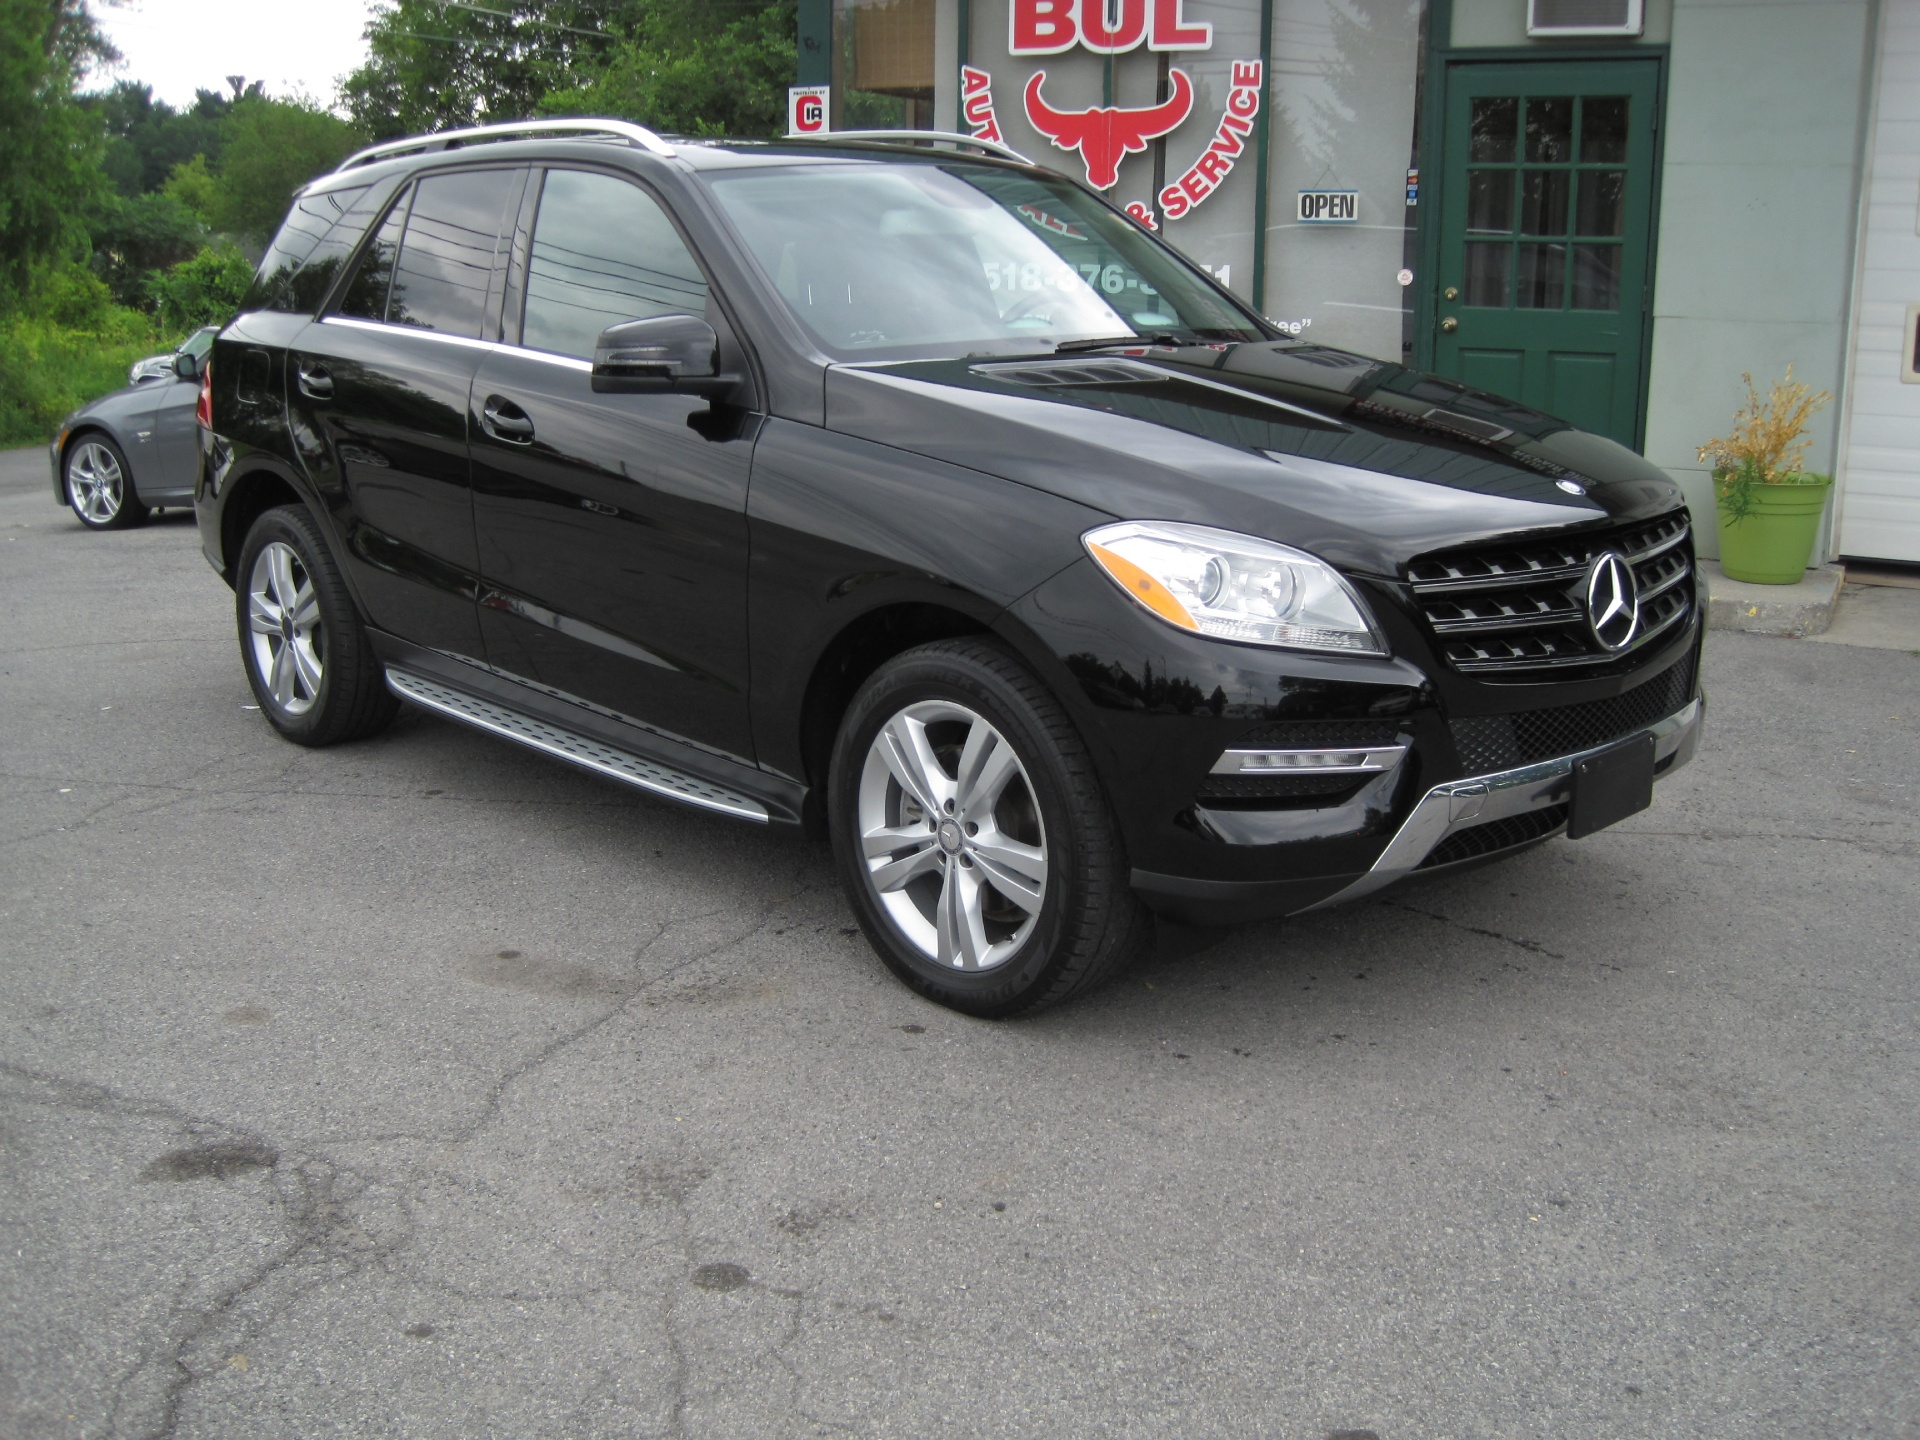 2013 mercedes benz m class ml350 4matic stock 15093 for sale near albany ny ny mercedes. Black Bedroom Furniture Sets. Home Design Ideas